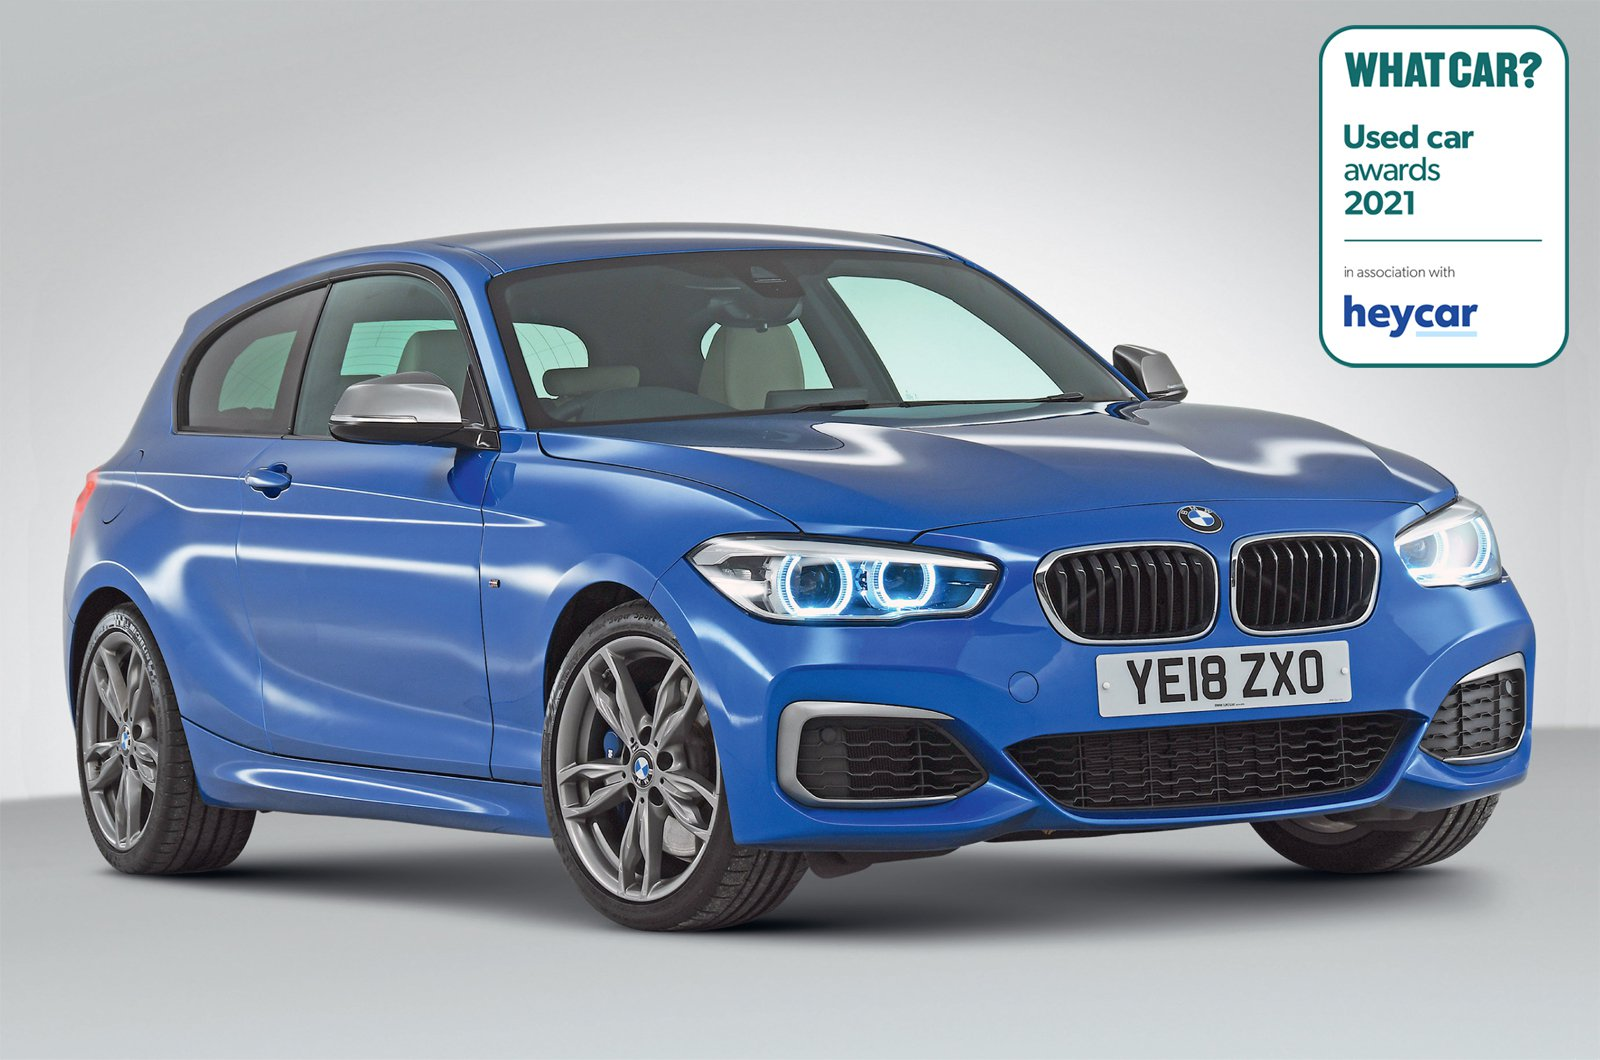 Used Car Awards 2021 - BMW M140i